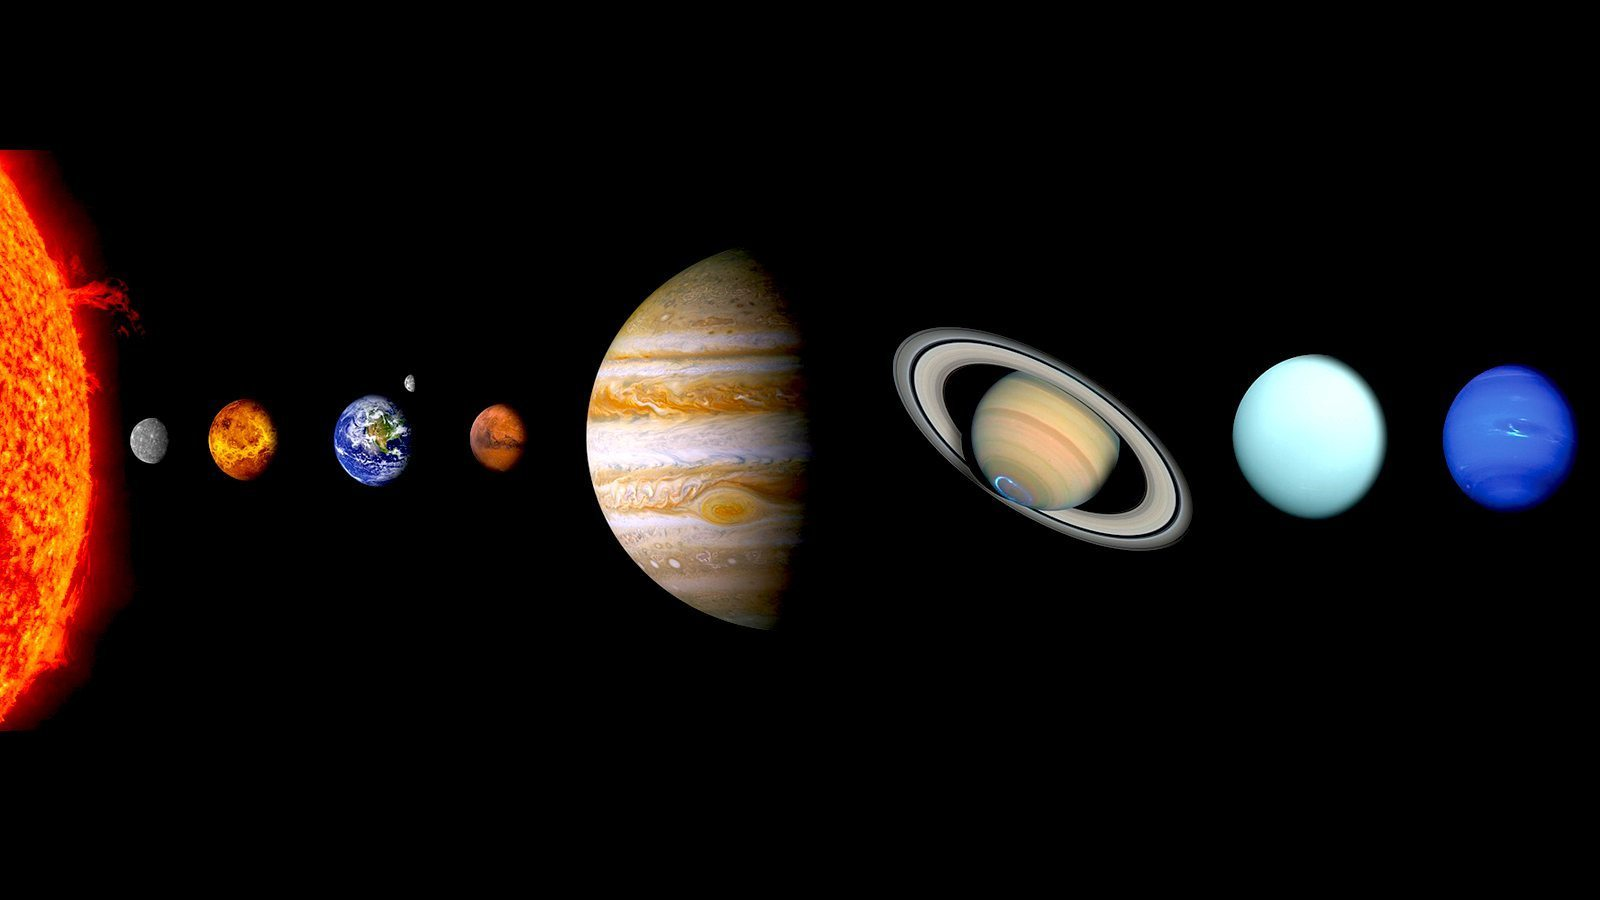 Not a true to scale representation of the space between planets in our solar system.